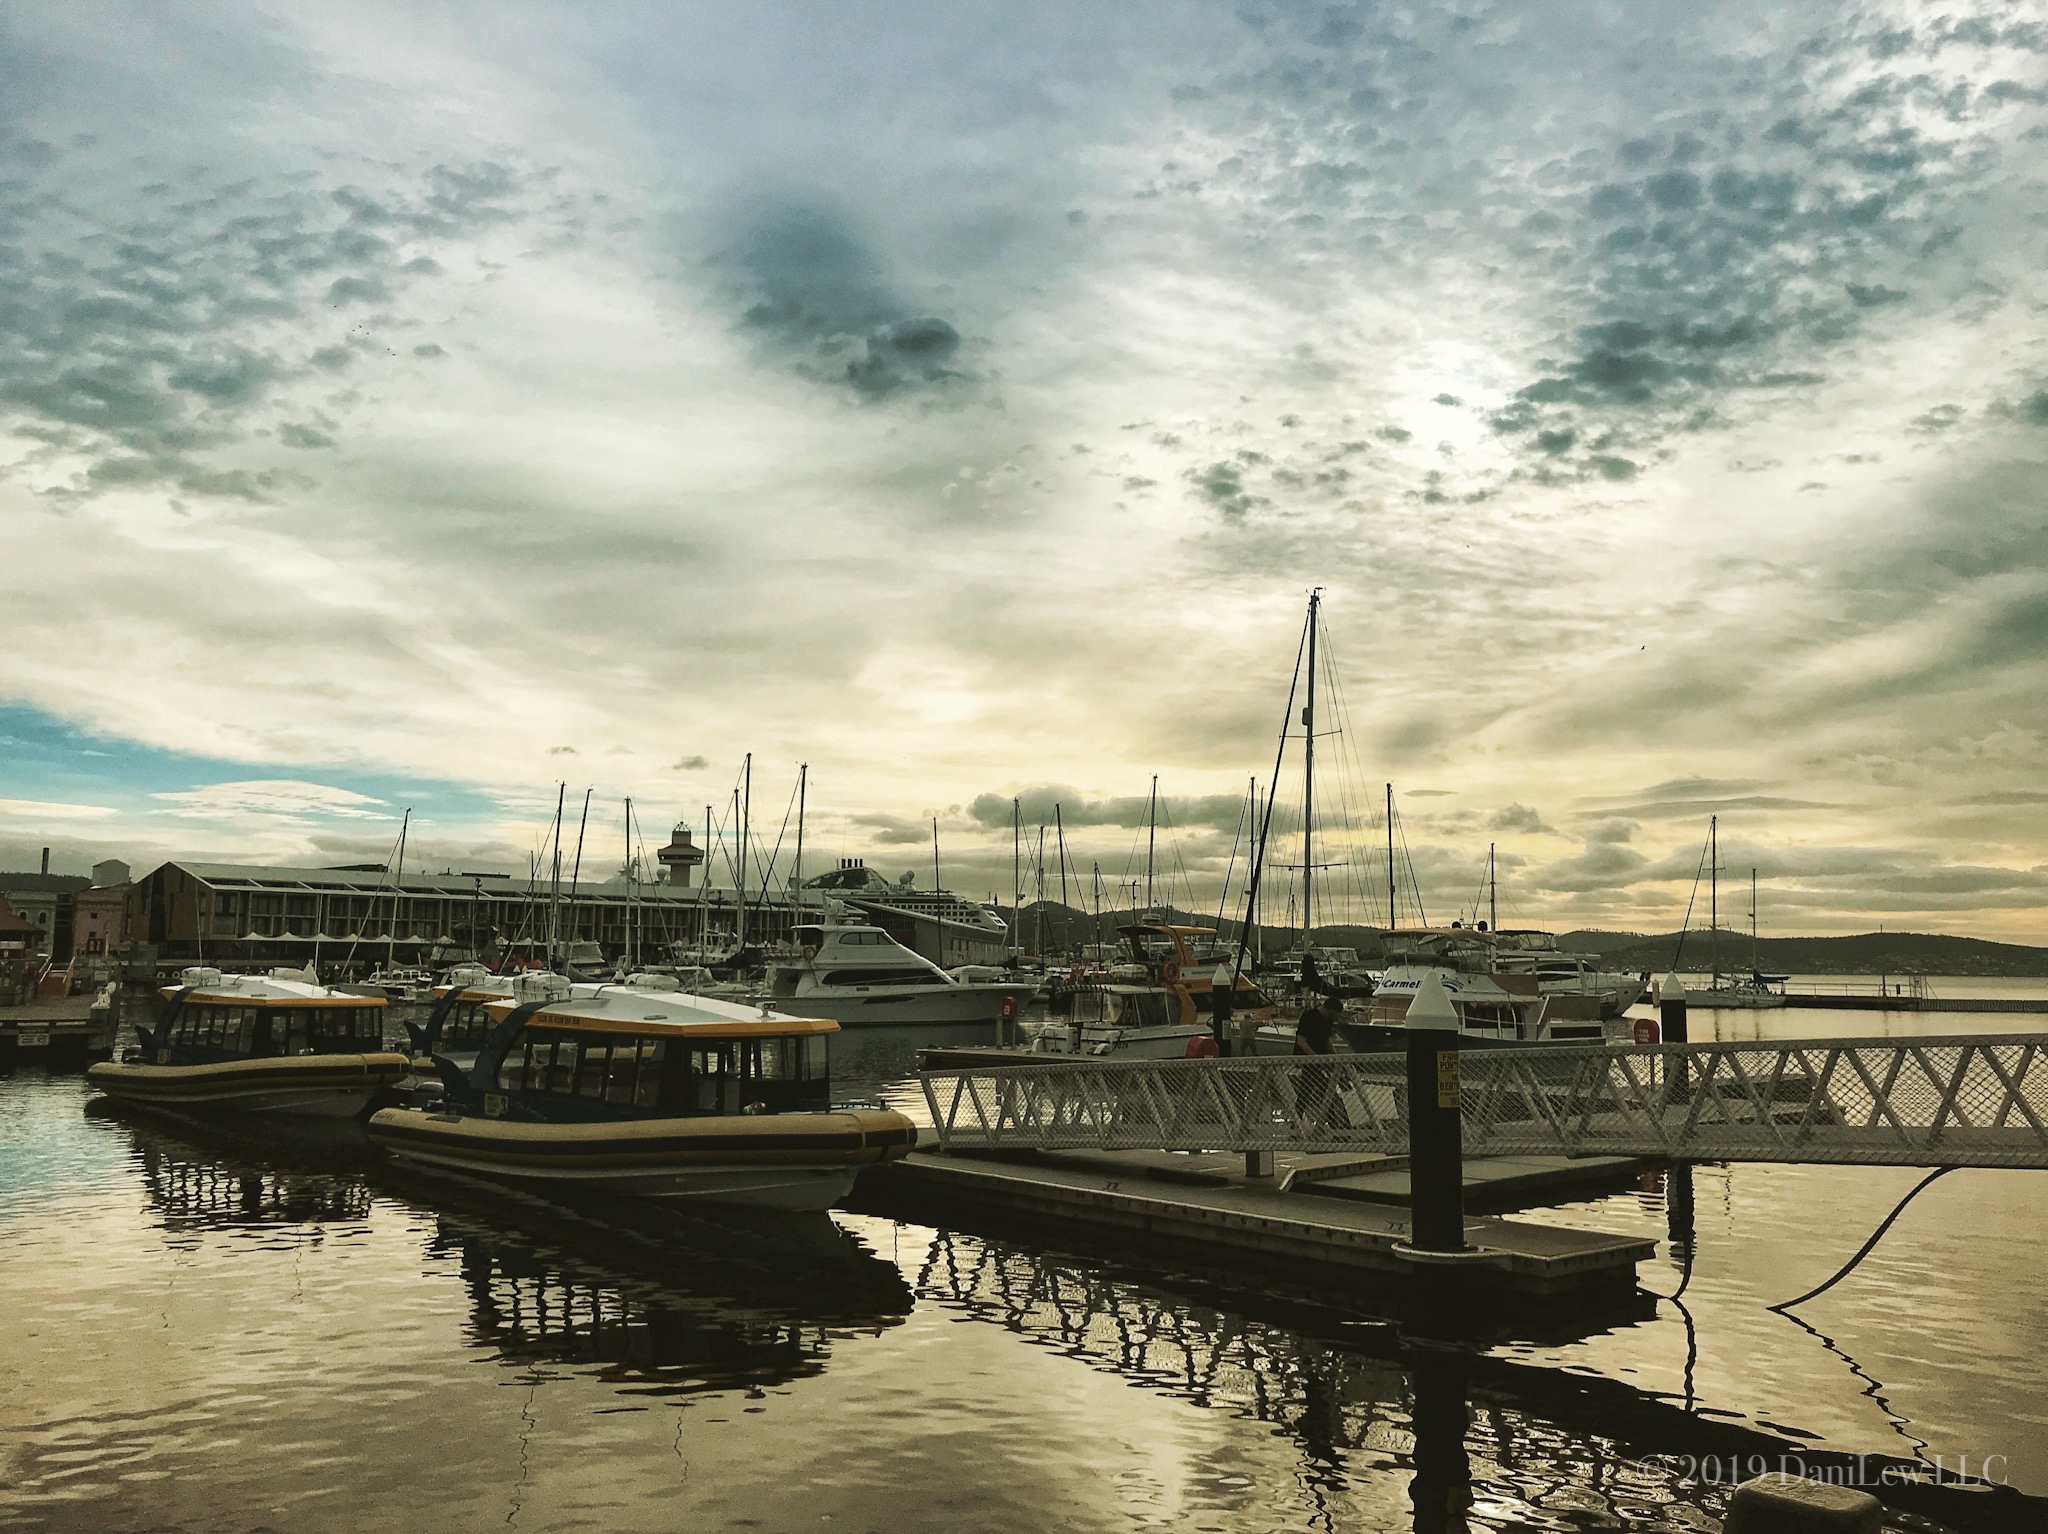 Constitution Dock Hobart Tasmania - image taken with an iPhone 7